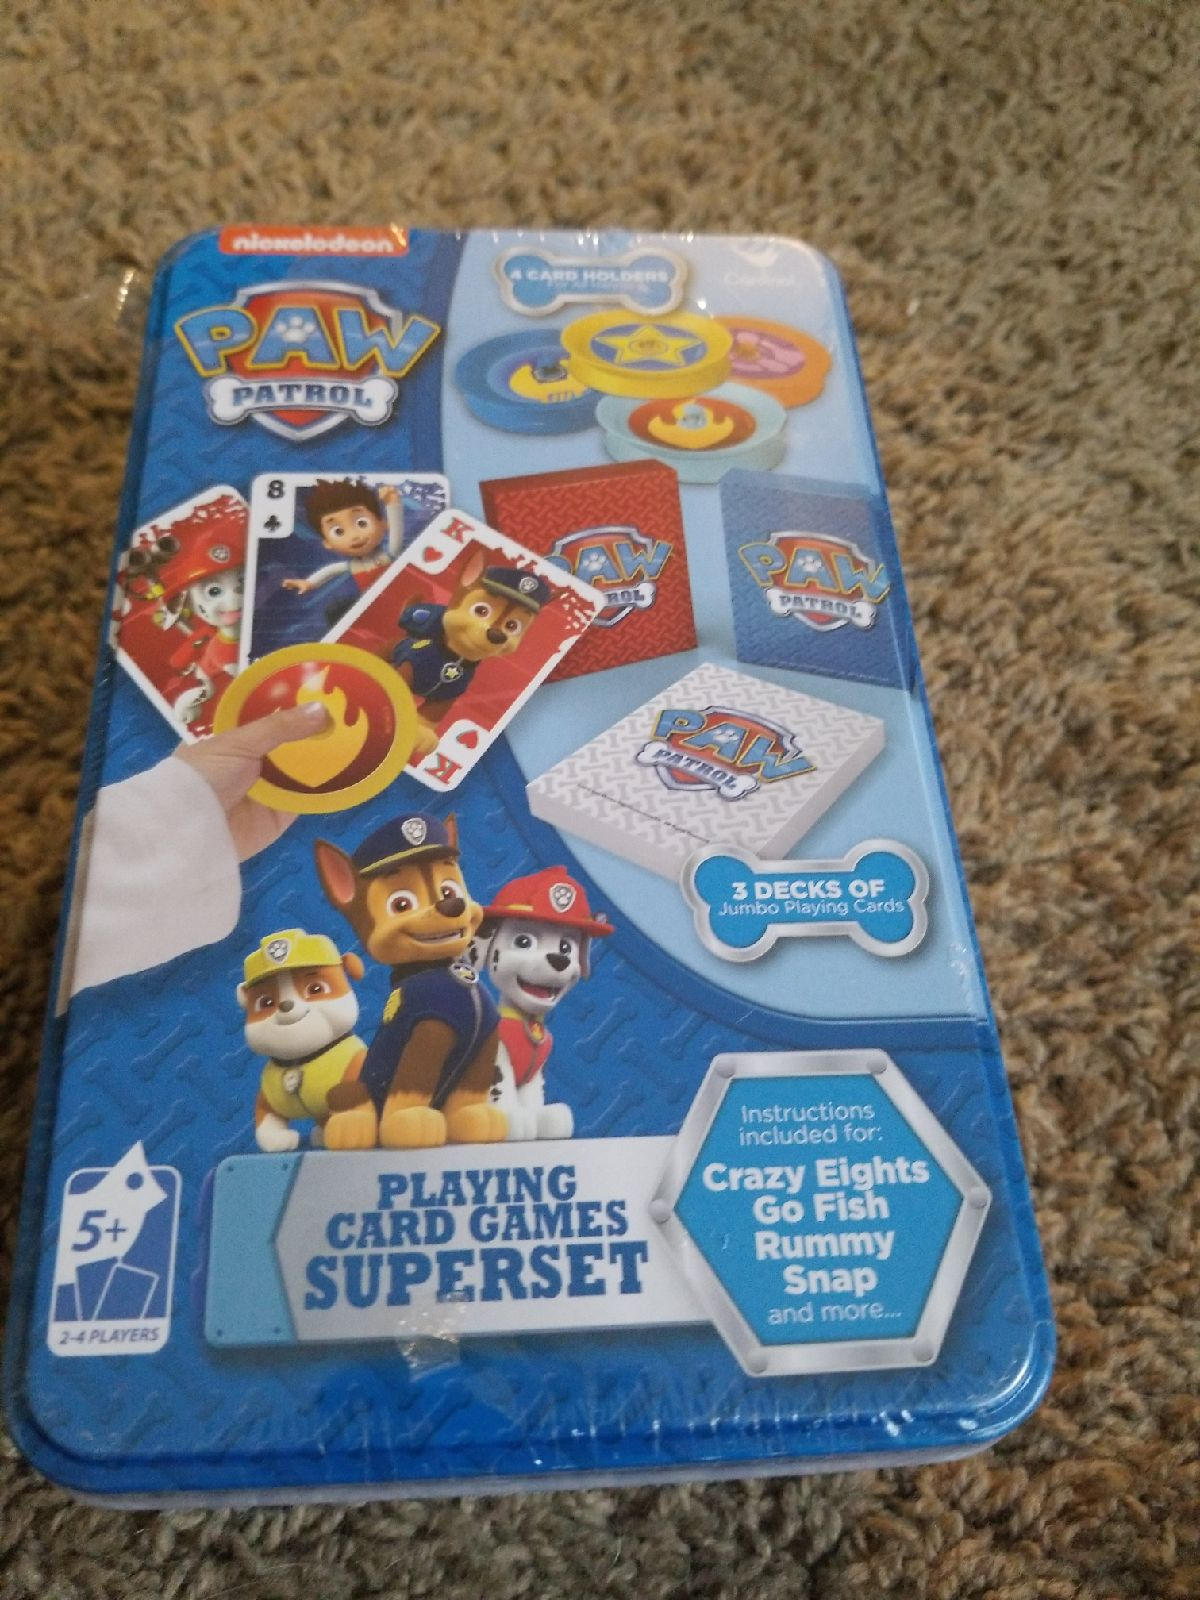 Paw Patrol Playing Card Games Superset